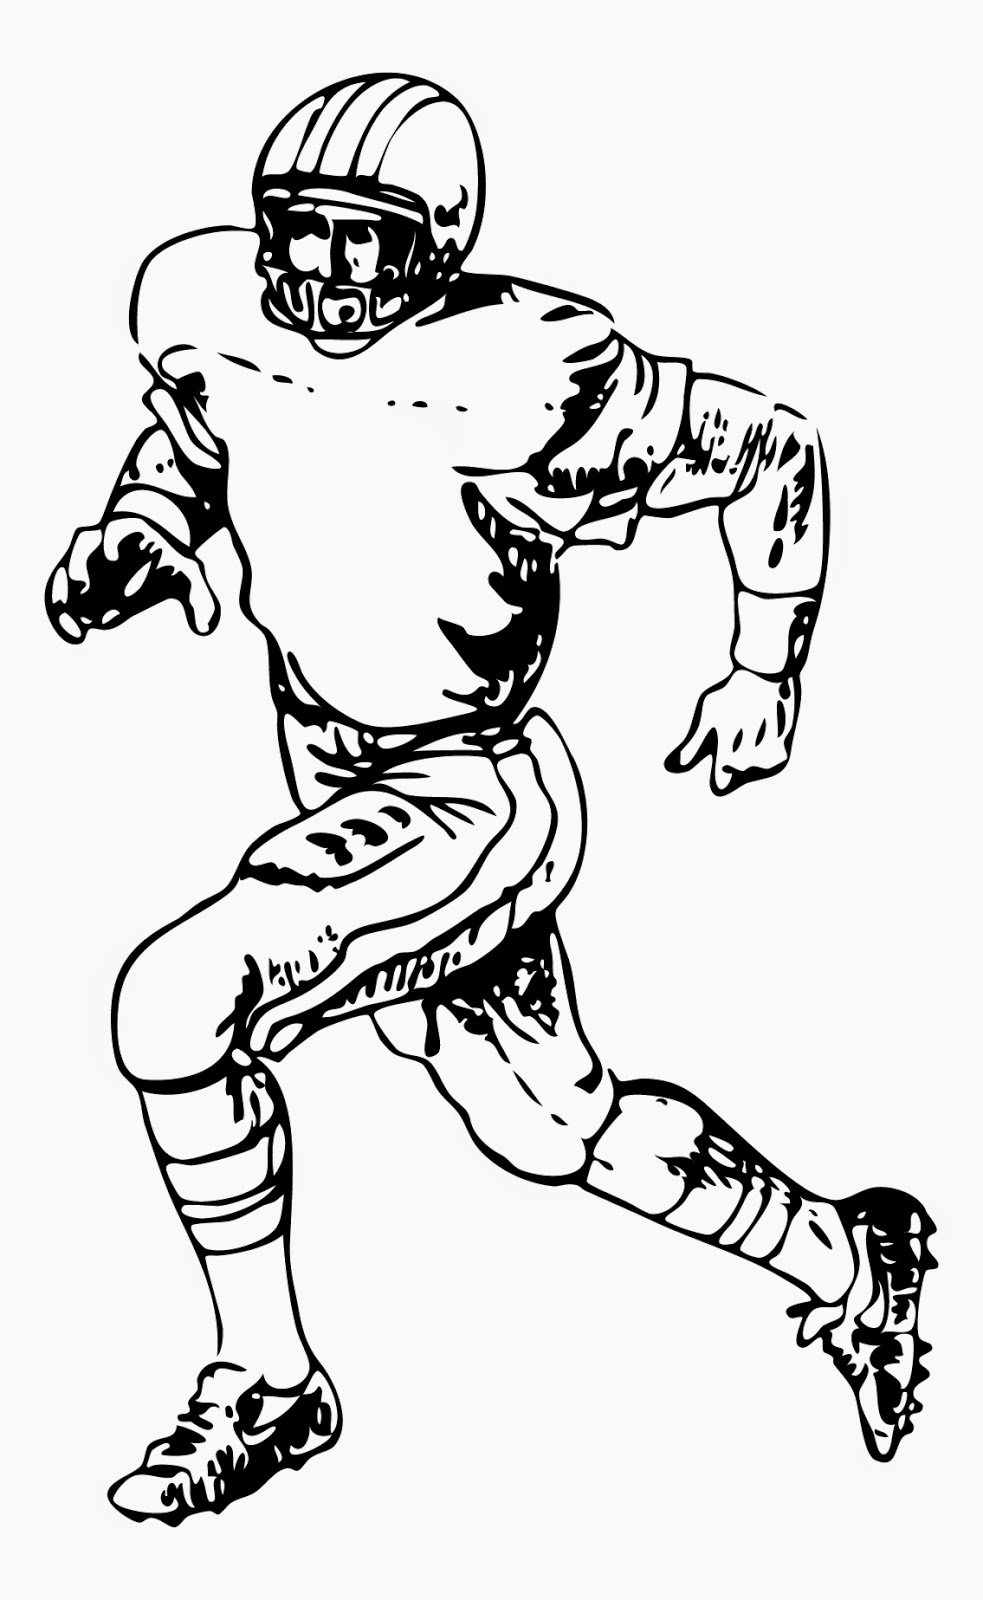 nfl football player coloring pages - photo#20